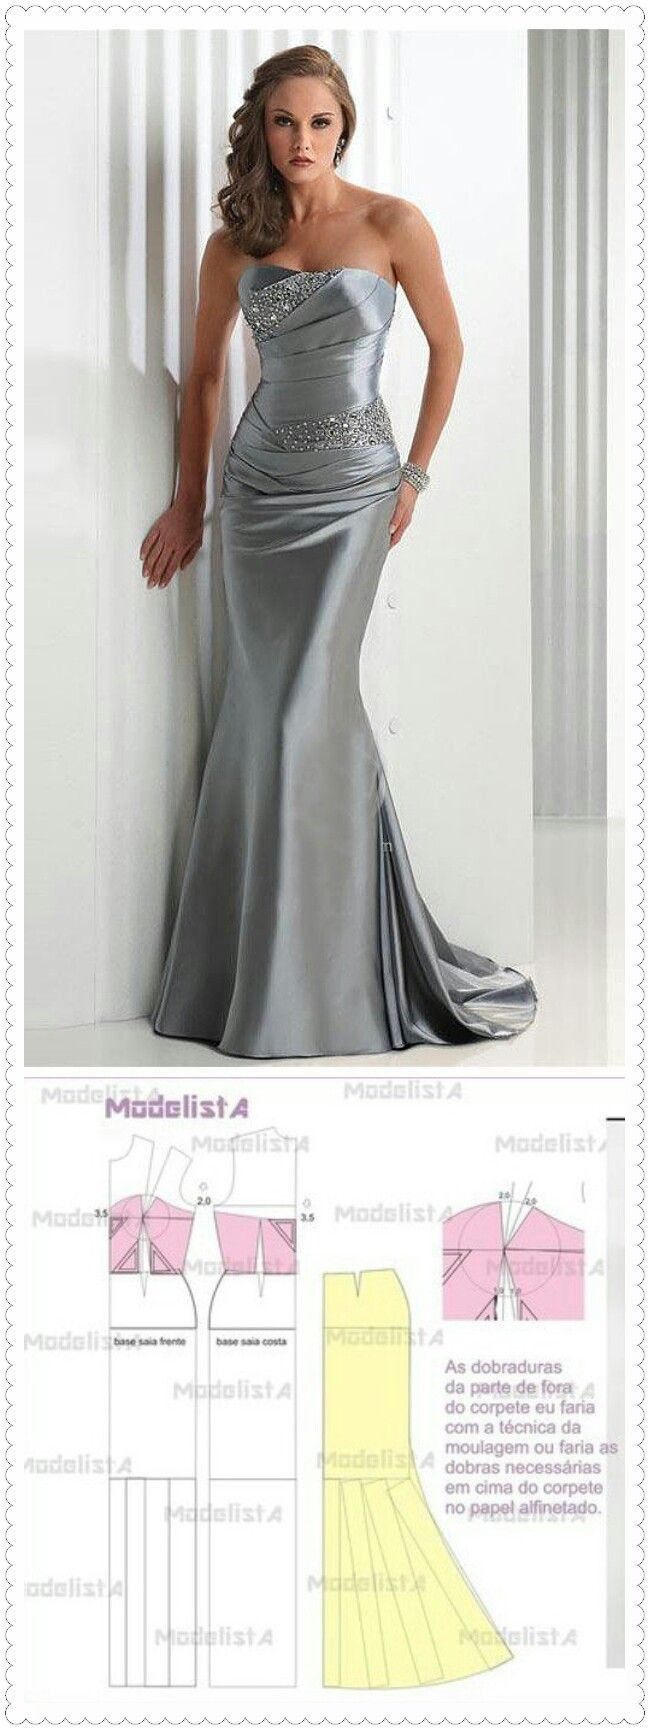 Mermaid prom dress sewing patterns dress images mermaid prom dress sewing patterns jeuxipadfo Image collections